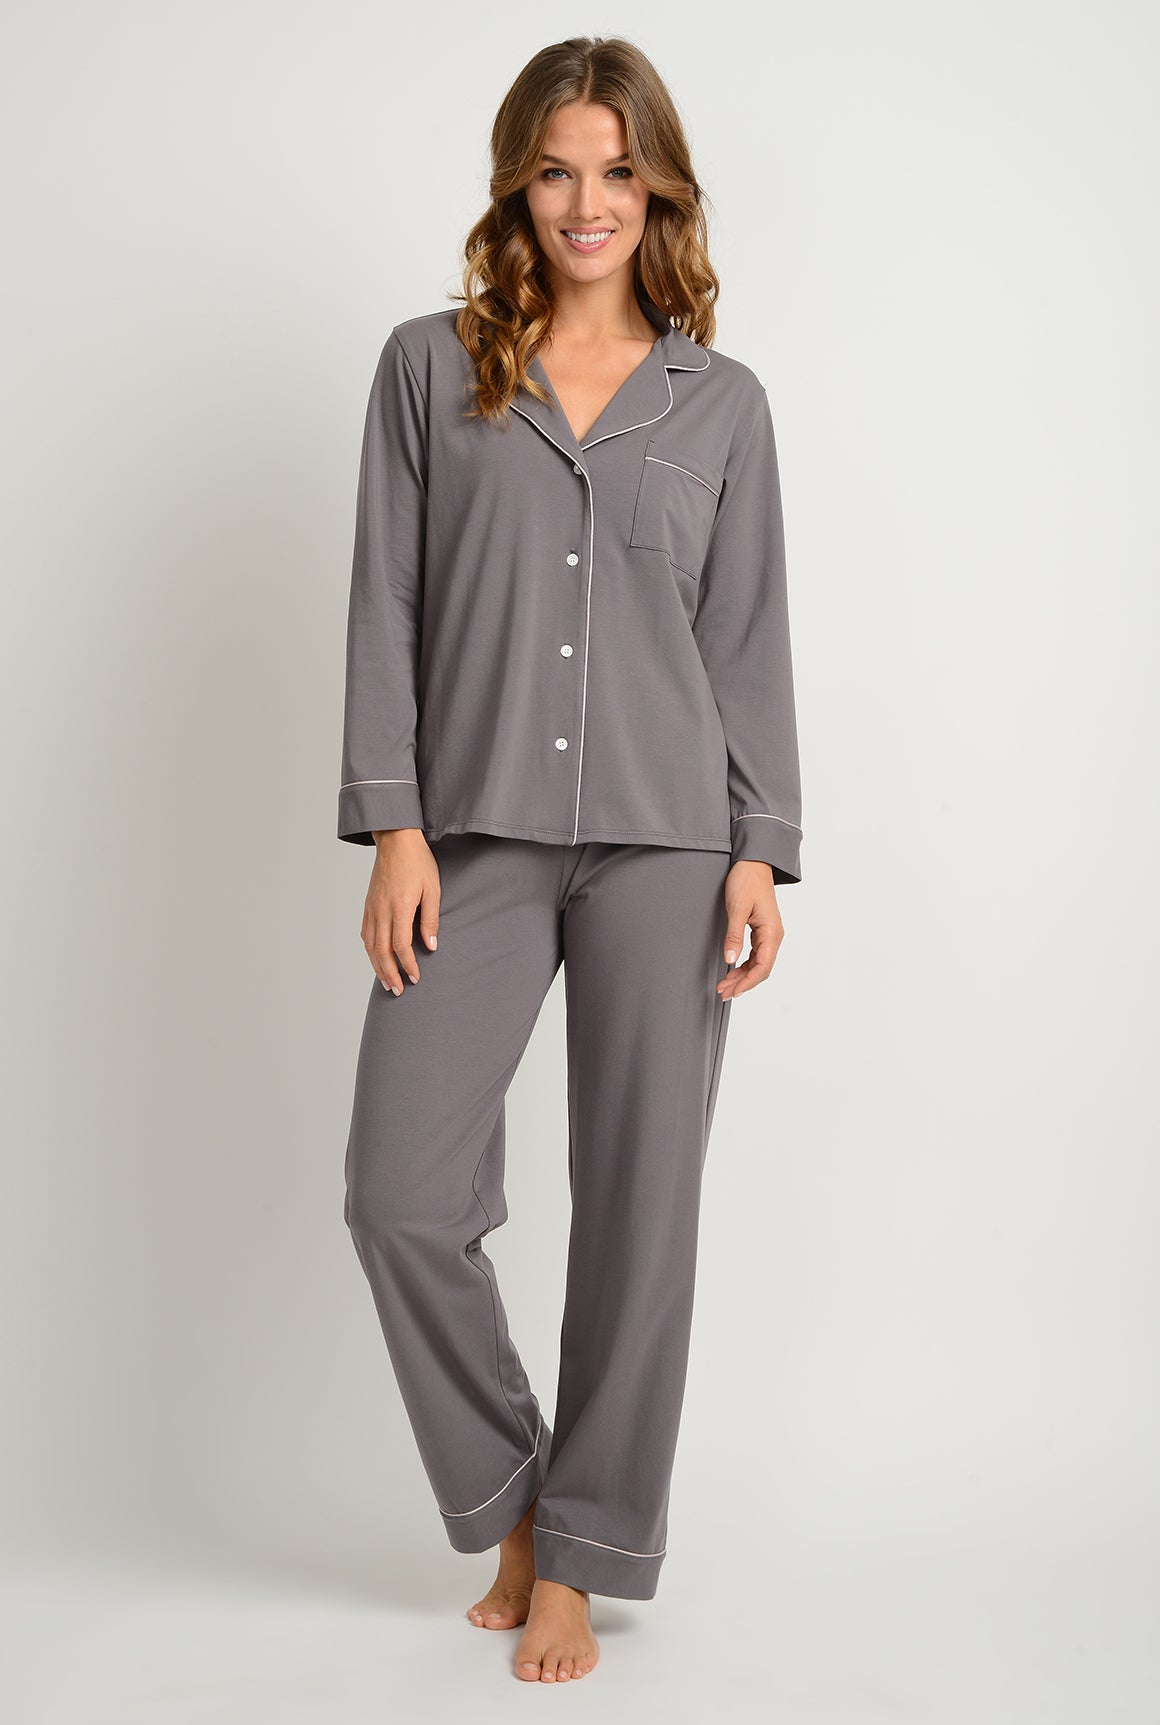 women s organic cotton pajamas sleepwear made in the usa ff80ad2da